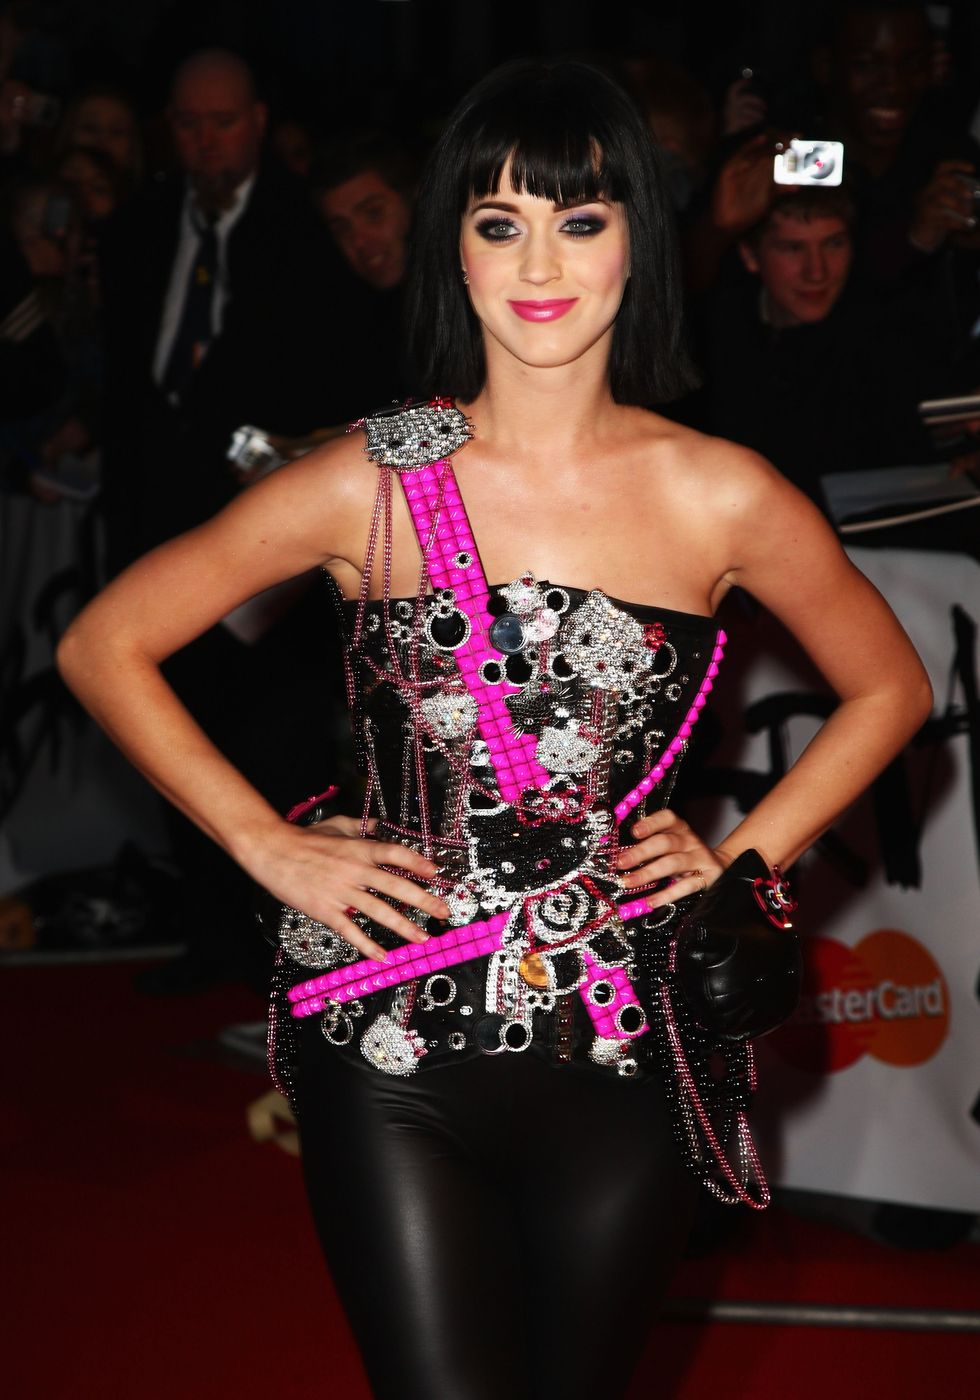 katy-perry-brit-awards-2009-in-london-13